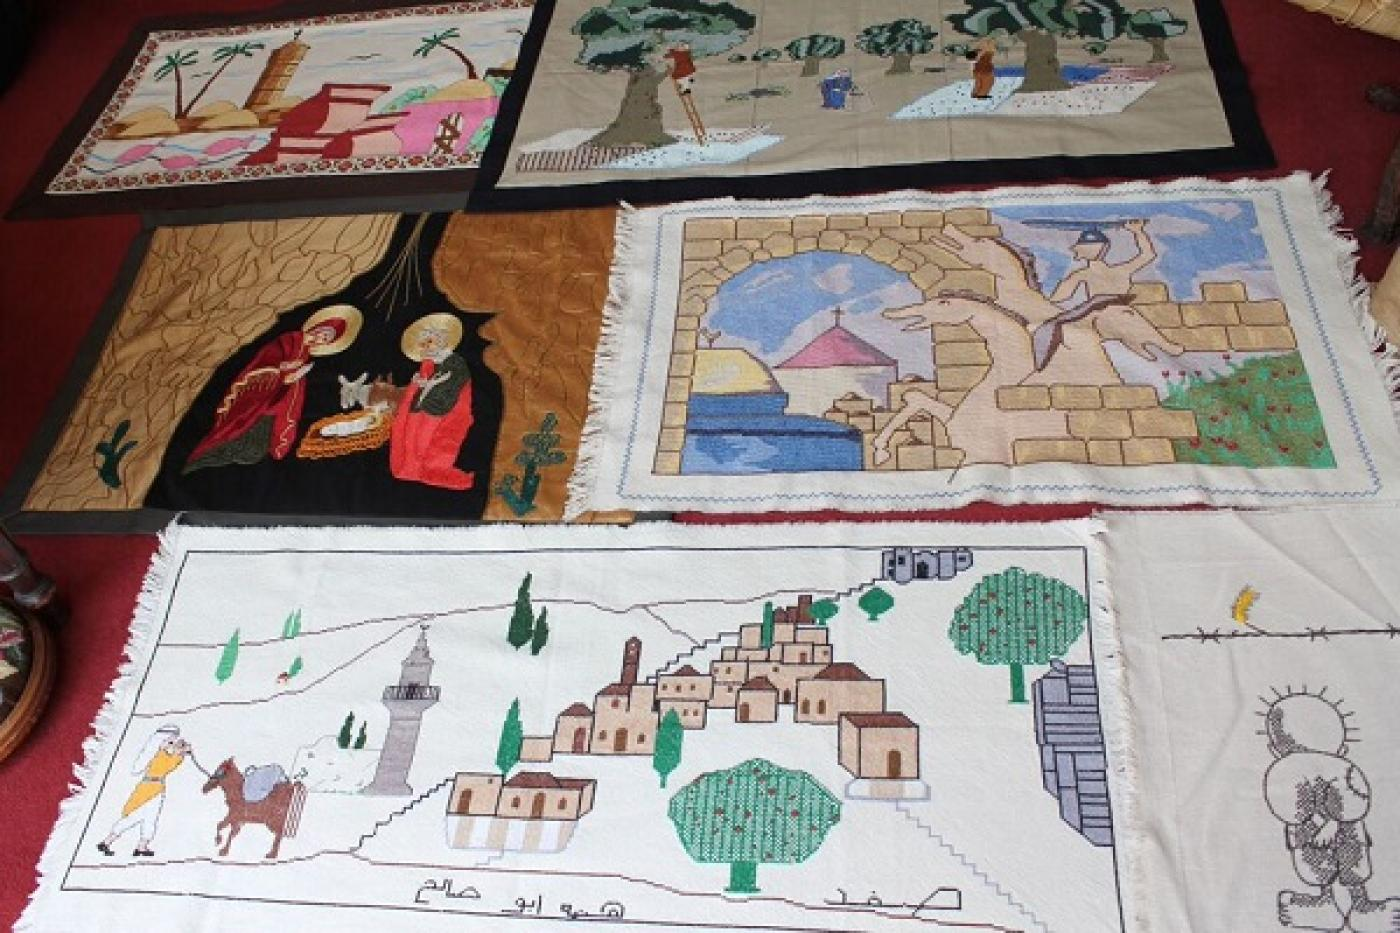 The History Tapestry Project: Narrating the story of